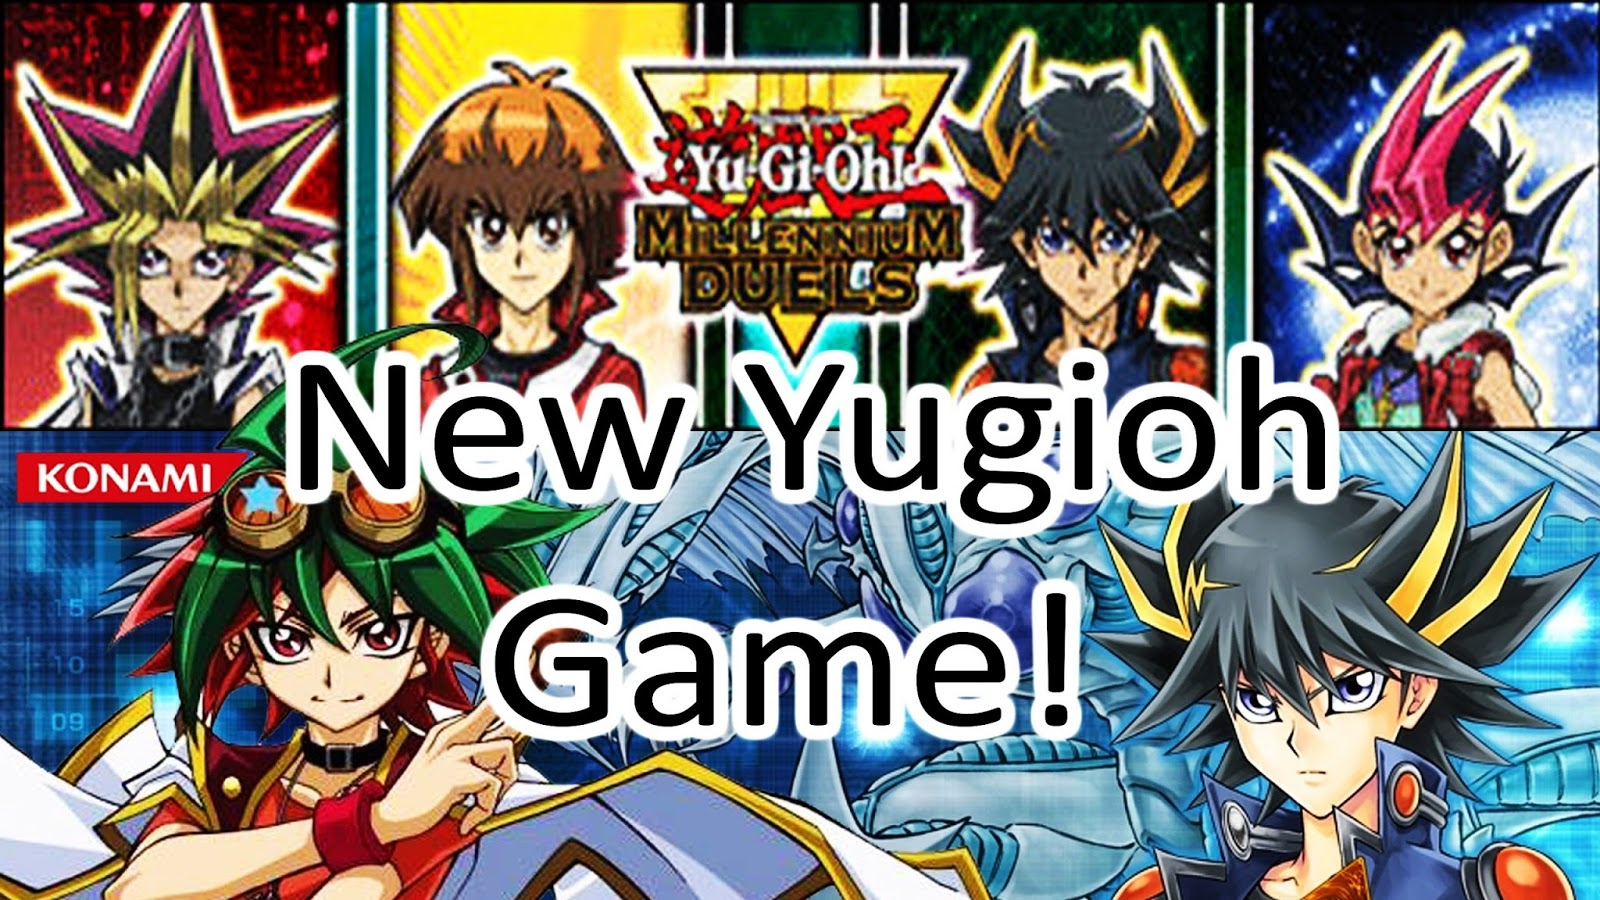 Yu gi oh pc game download torrent.